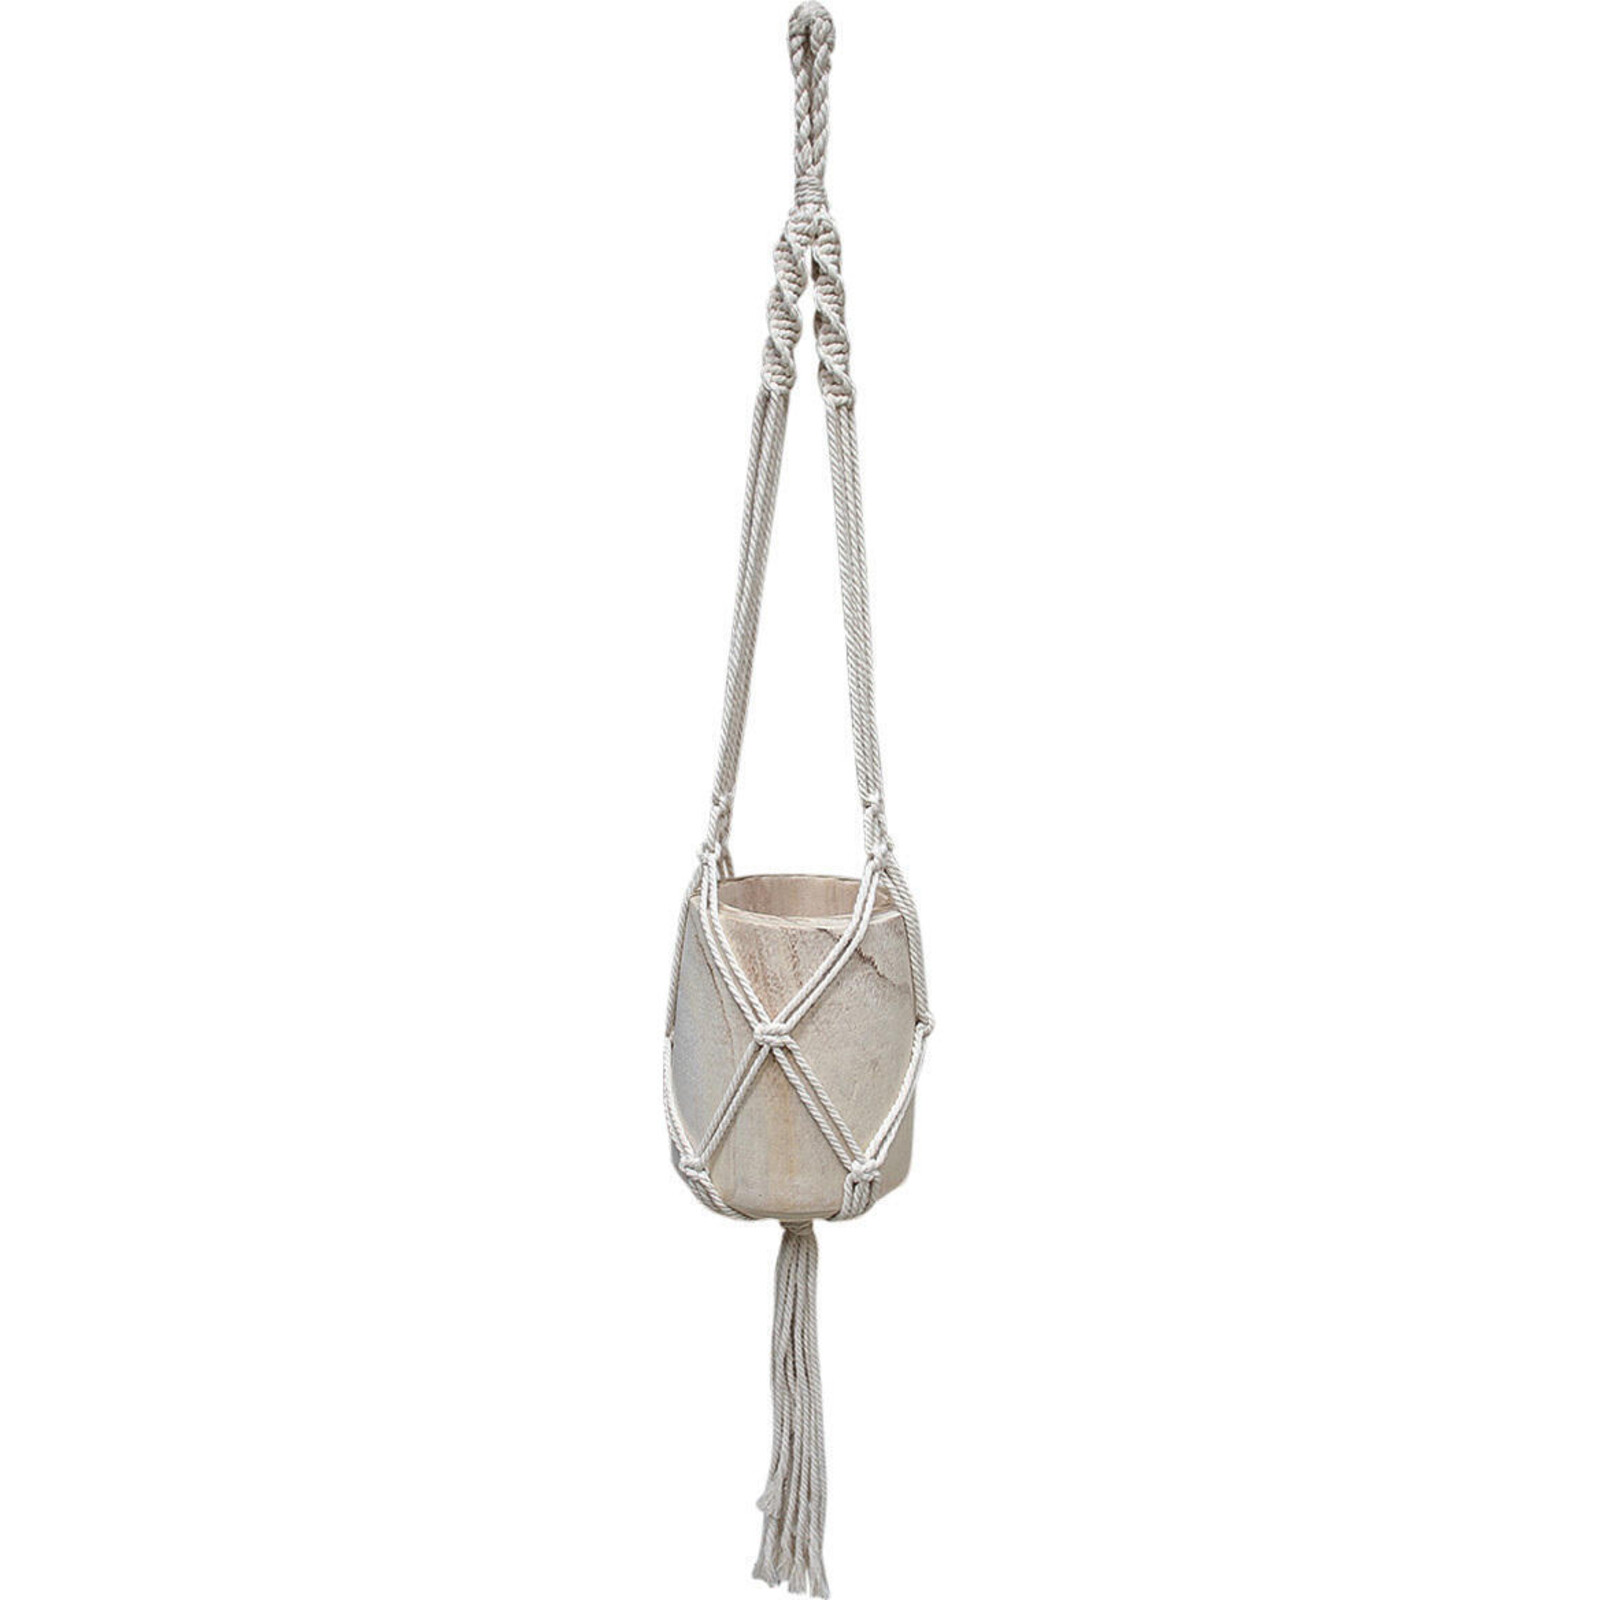 Hanging Macrame Bowl Knotted